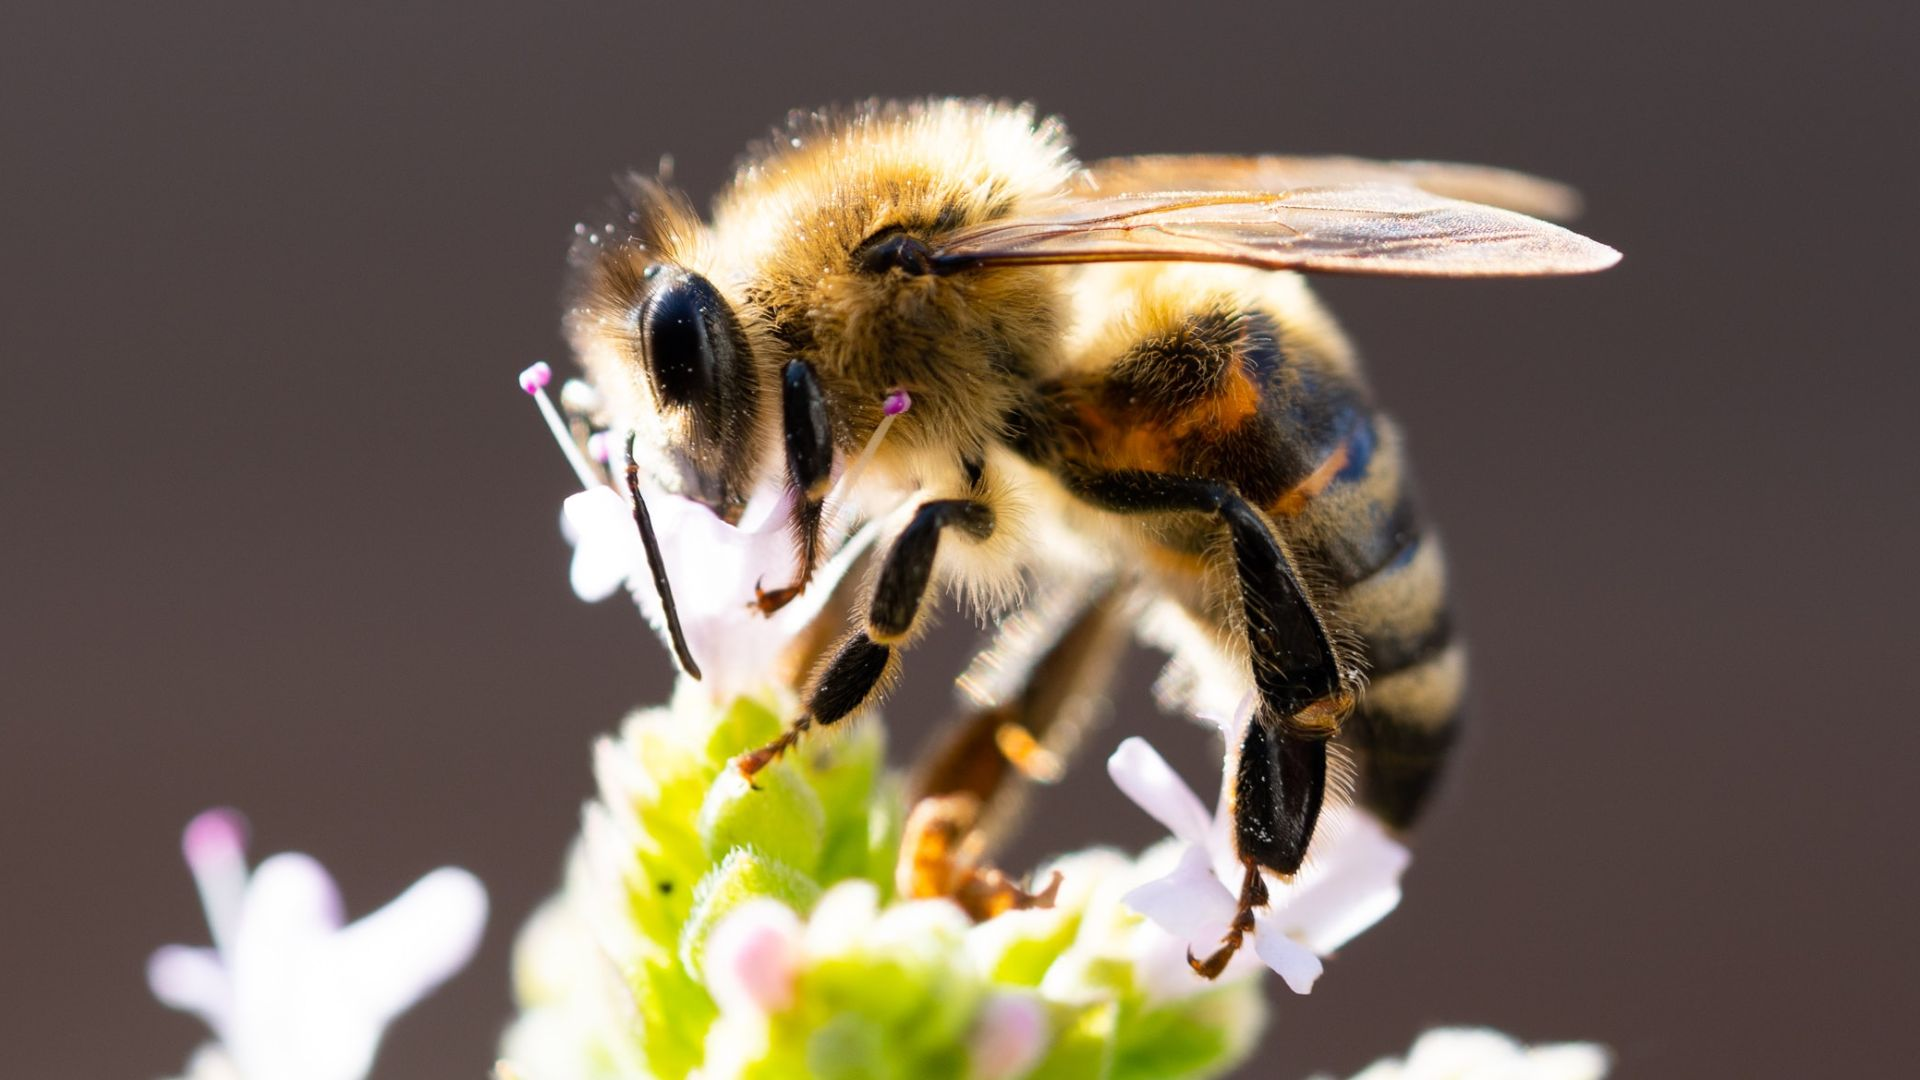 Nature's bee all and end all: Why 'Winged wonders' must be protected from threats